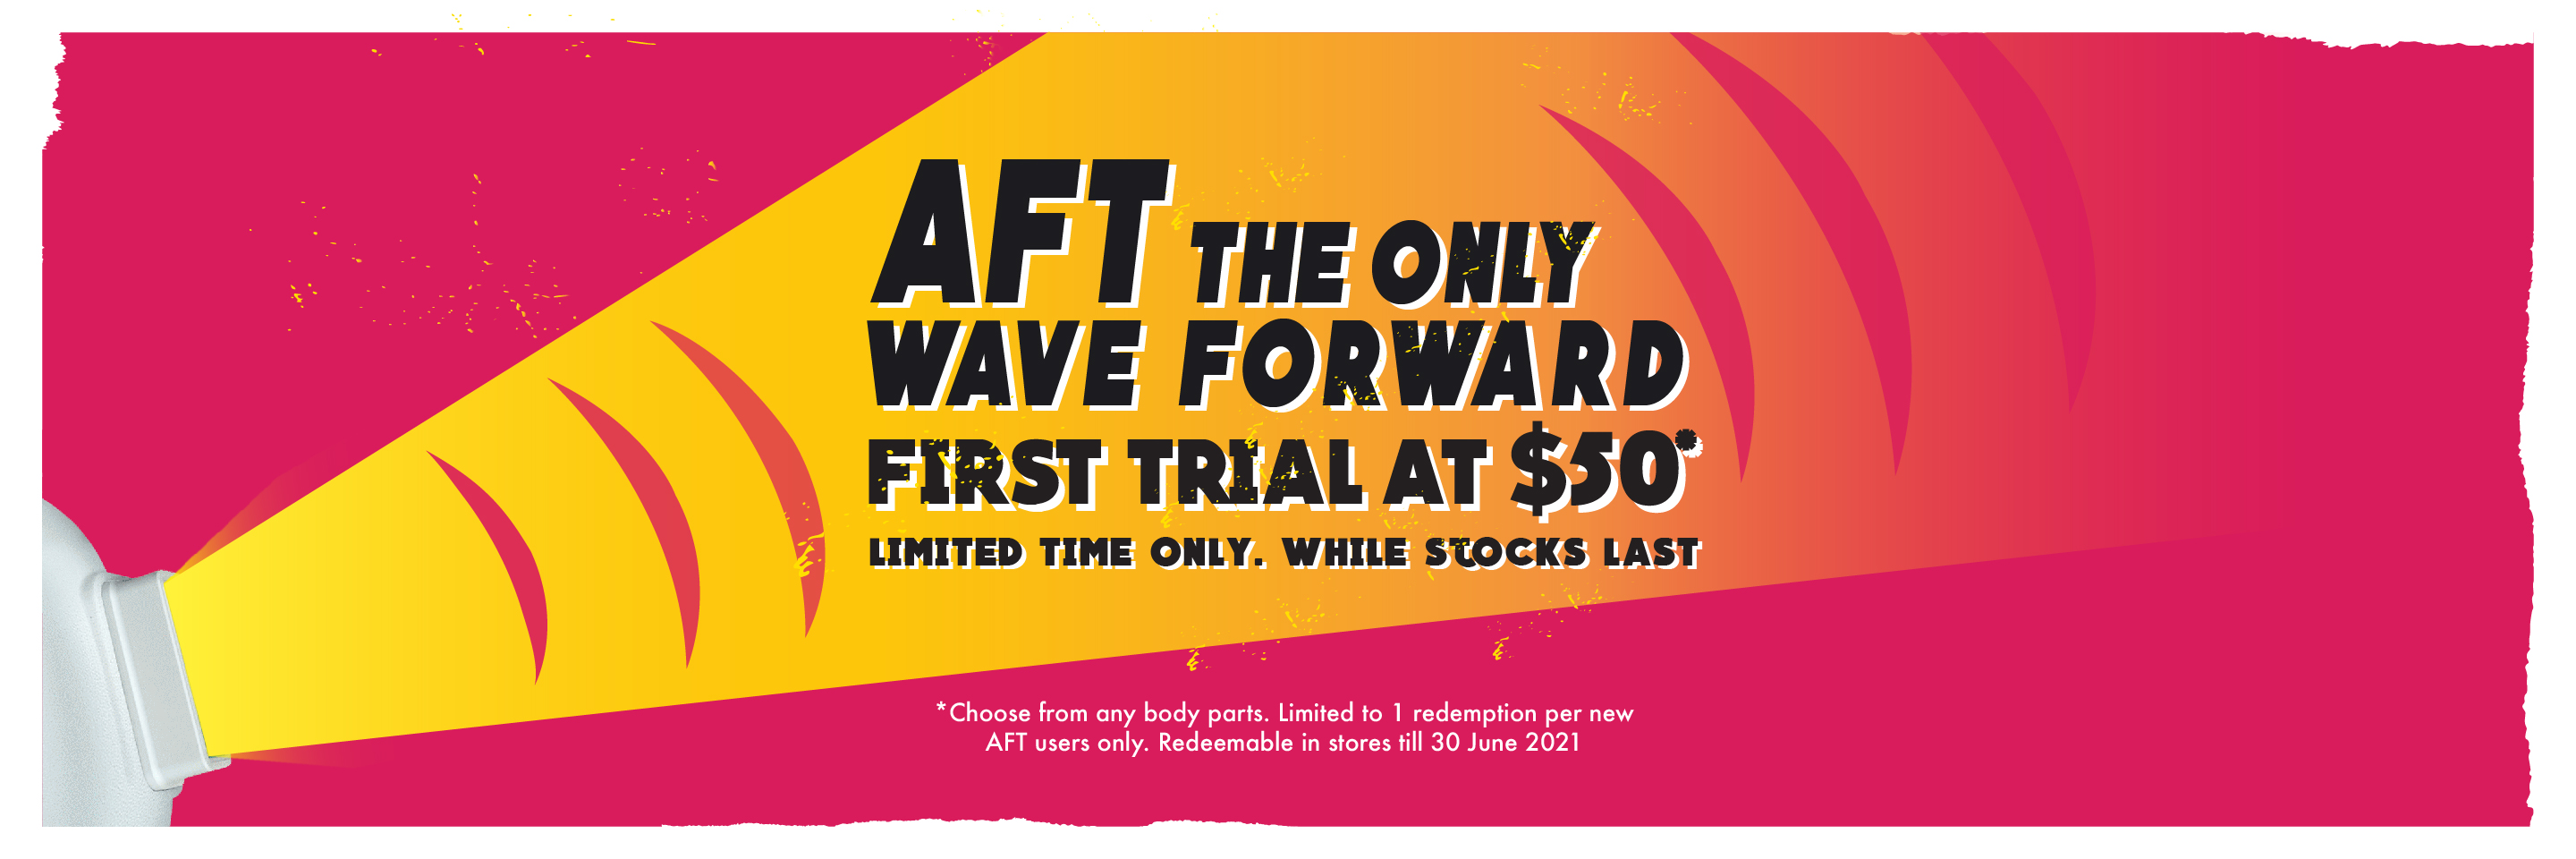 AFT $50 Trial May - Oct 2020